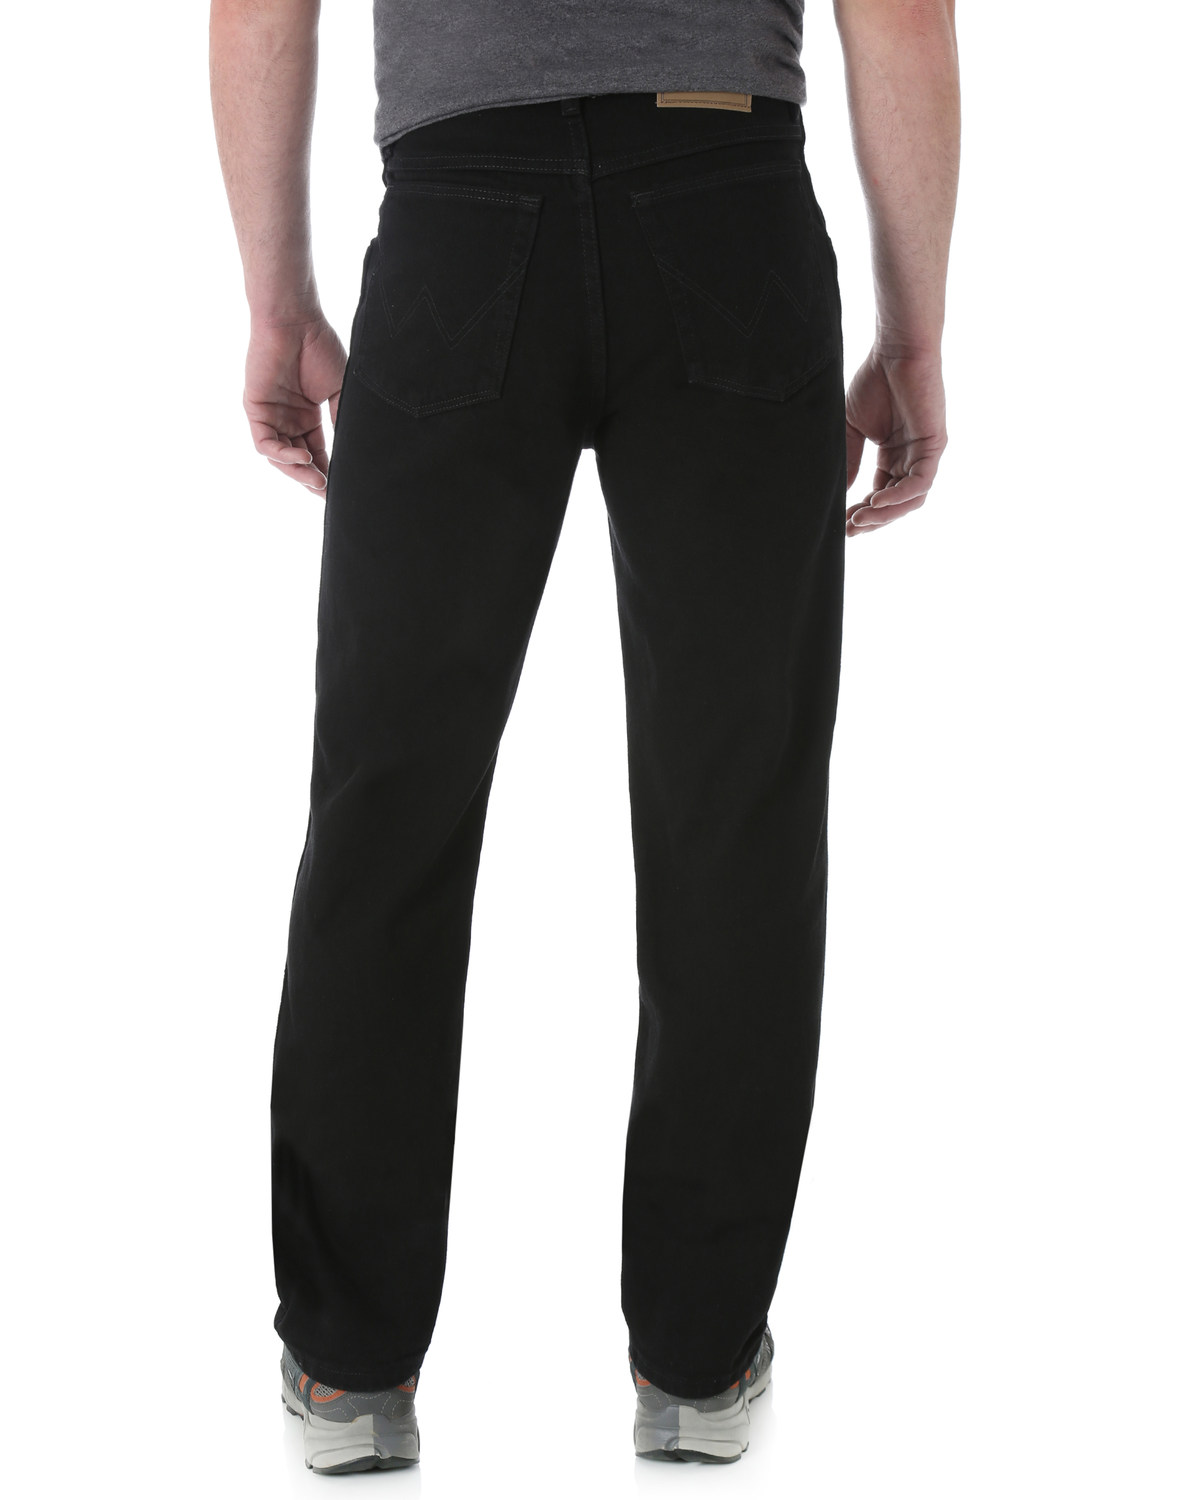 Rugged Wear Clic Fit Relaxed Jeans